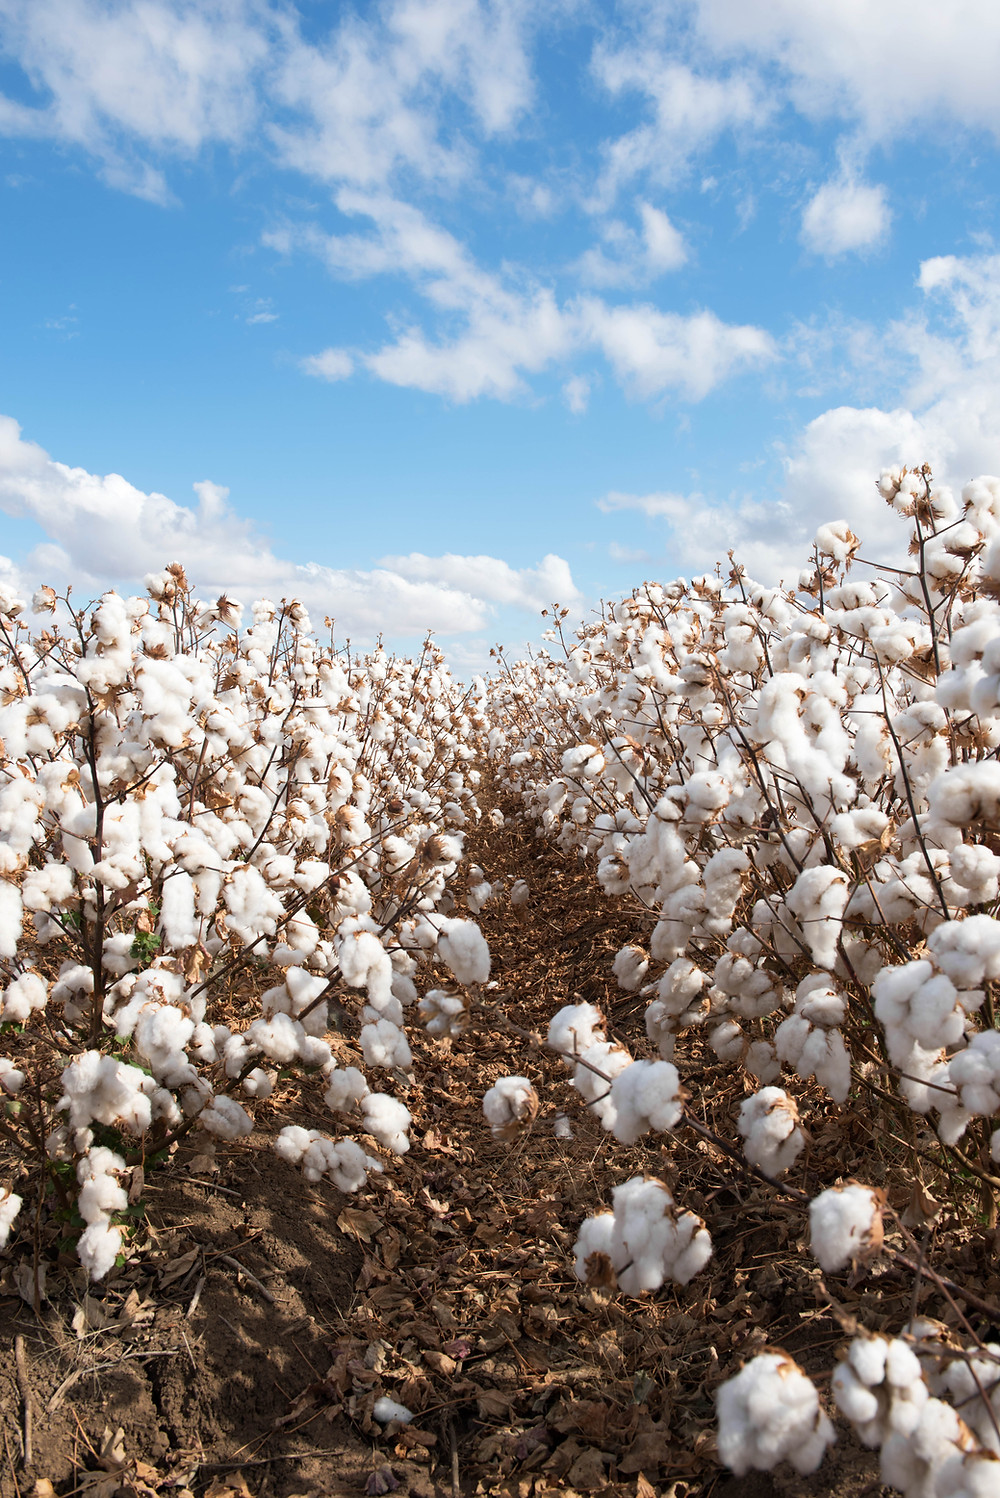 Field of cotton image